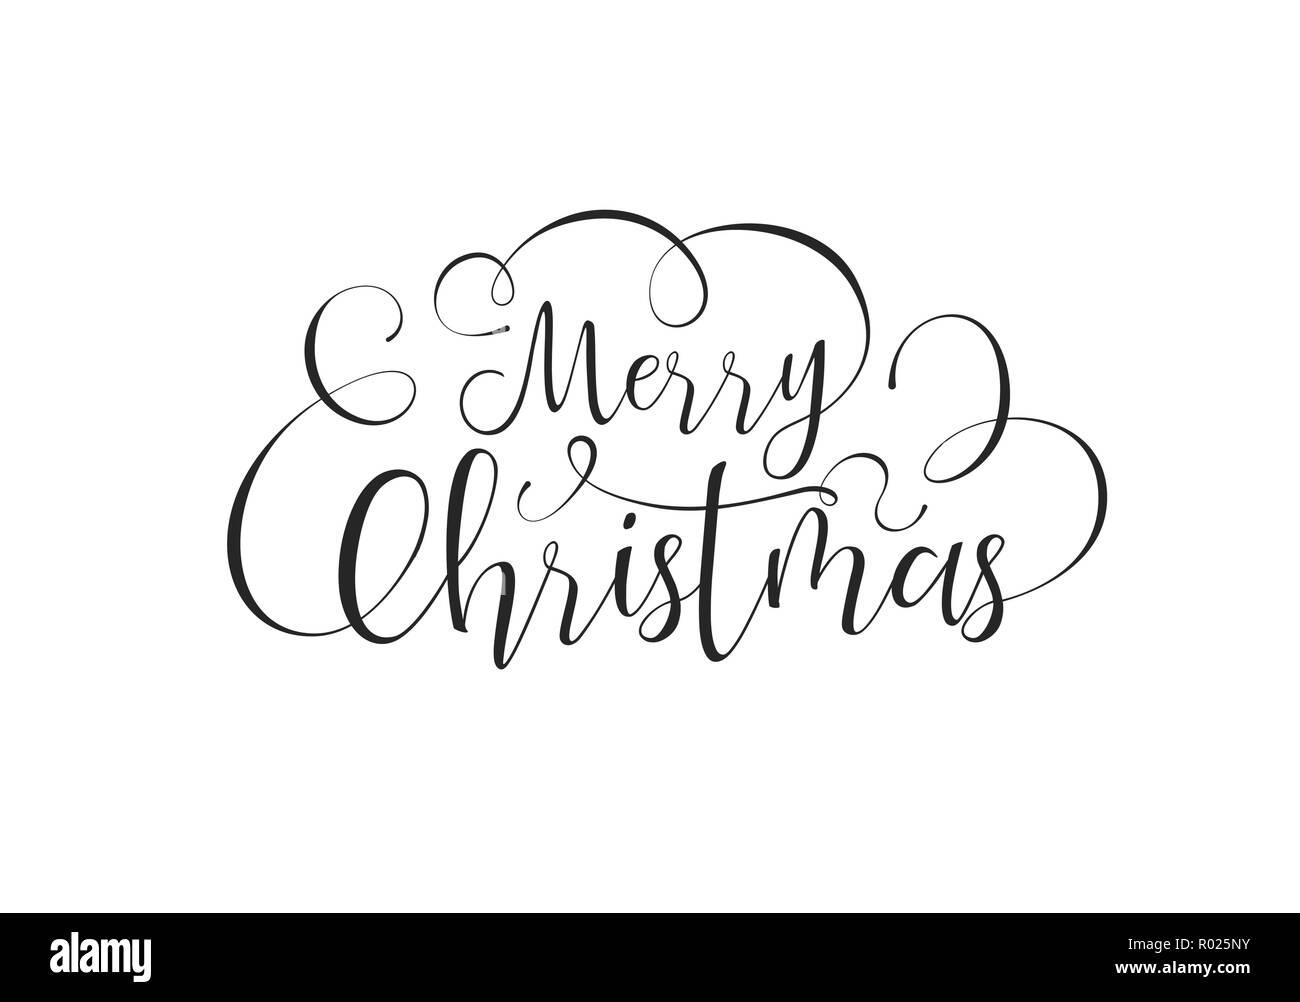 Merry Christmas Calligraphic Greeting Card Or Party